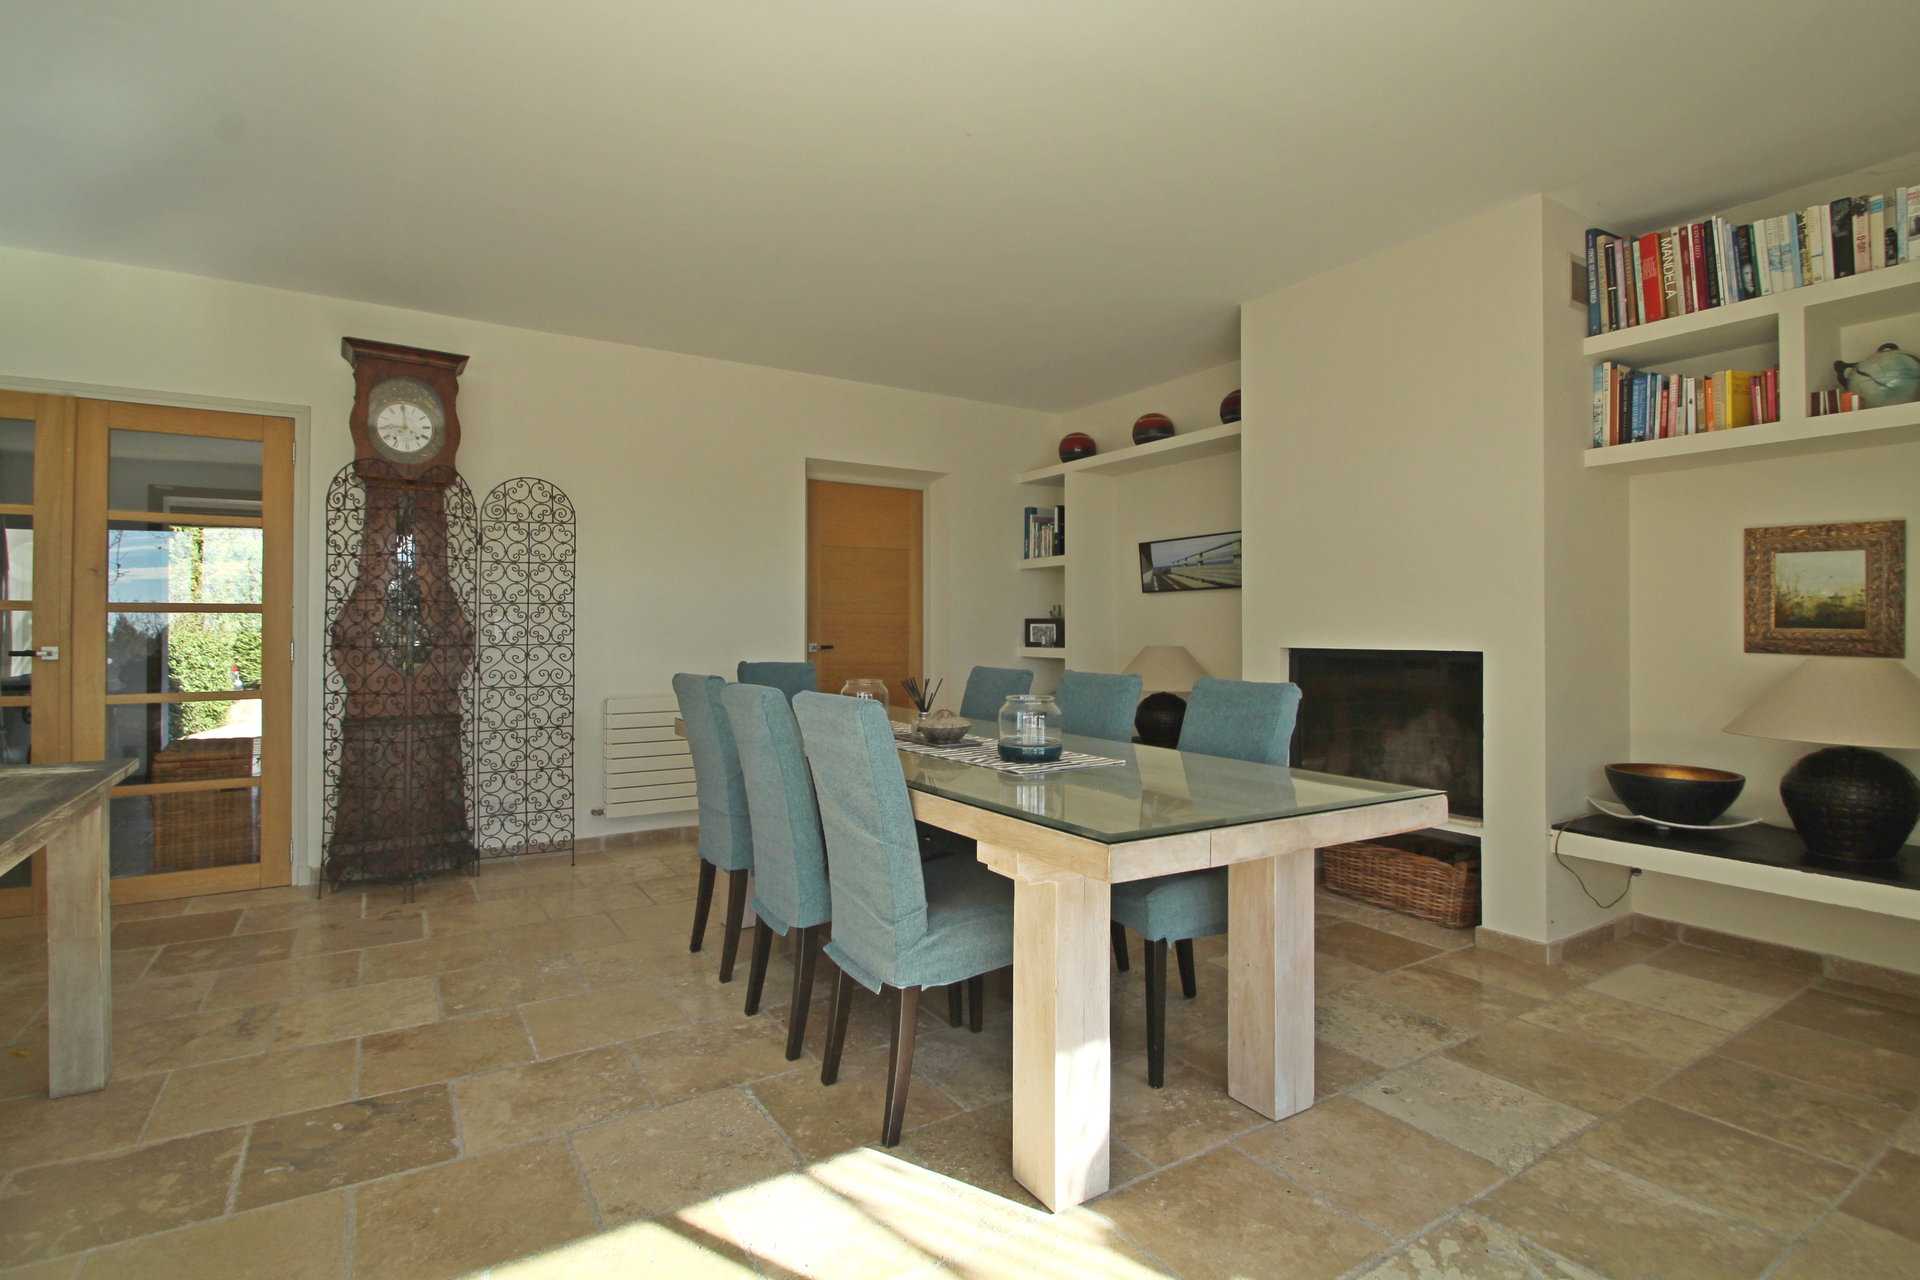 Fayence area: moderne villa in a haven of peace on 11000m² of land